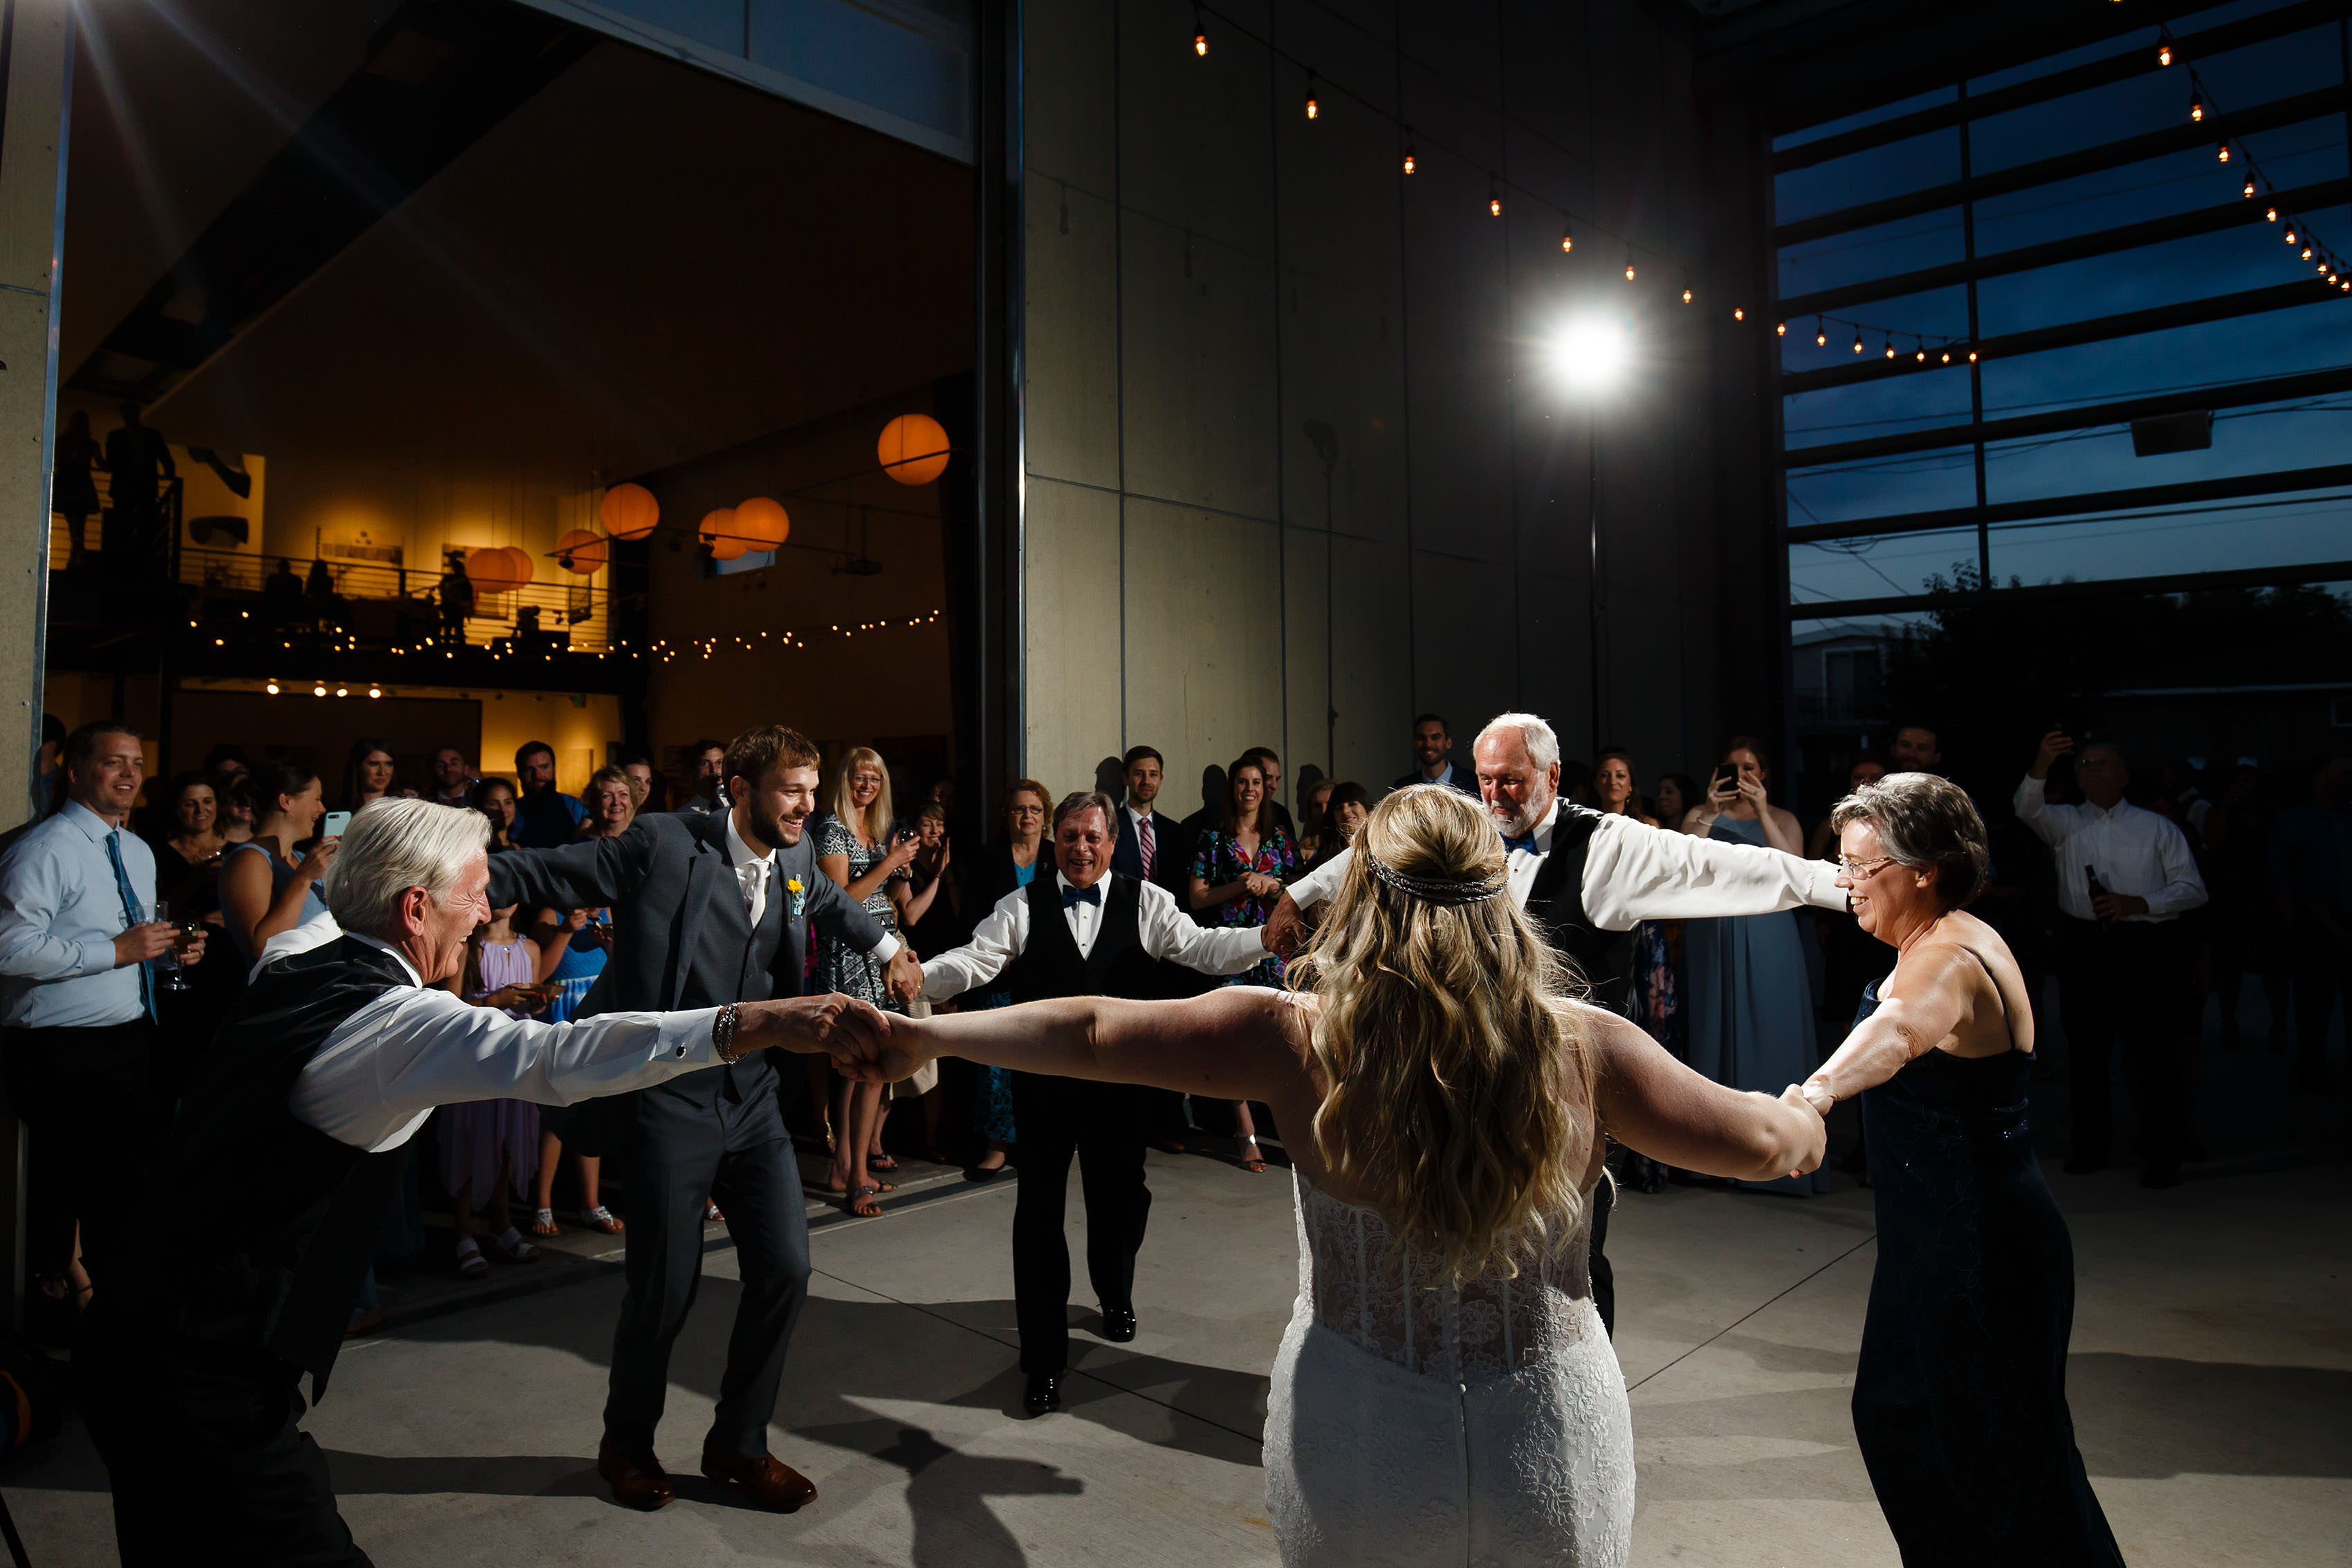 The bride and groom dance with their family on the patio during their Space Gallery Wedding